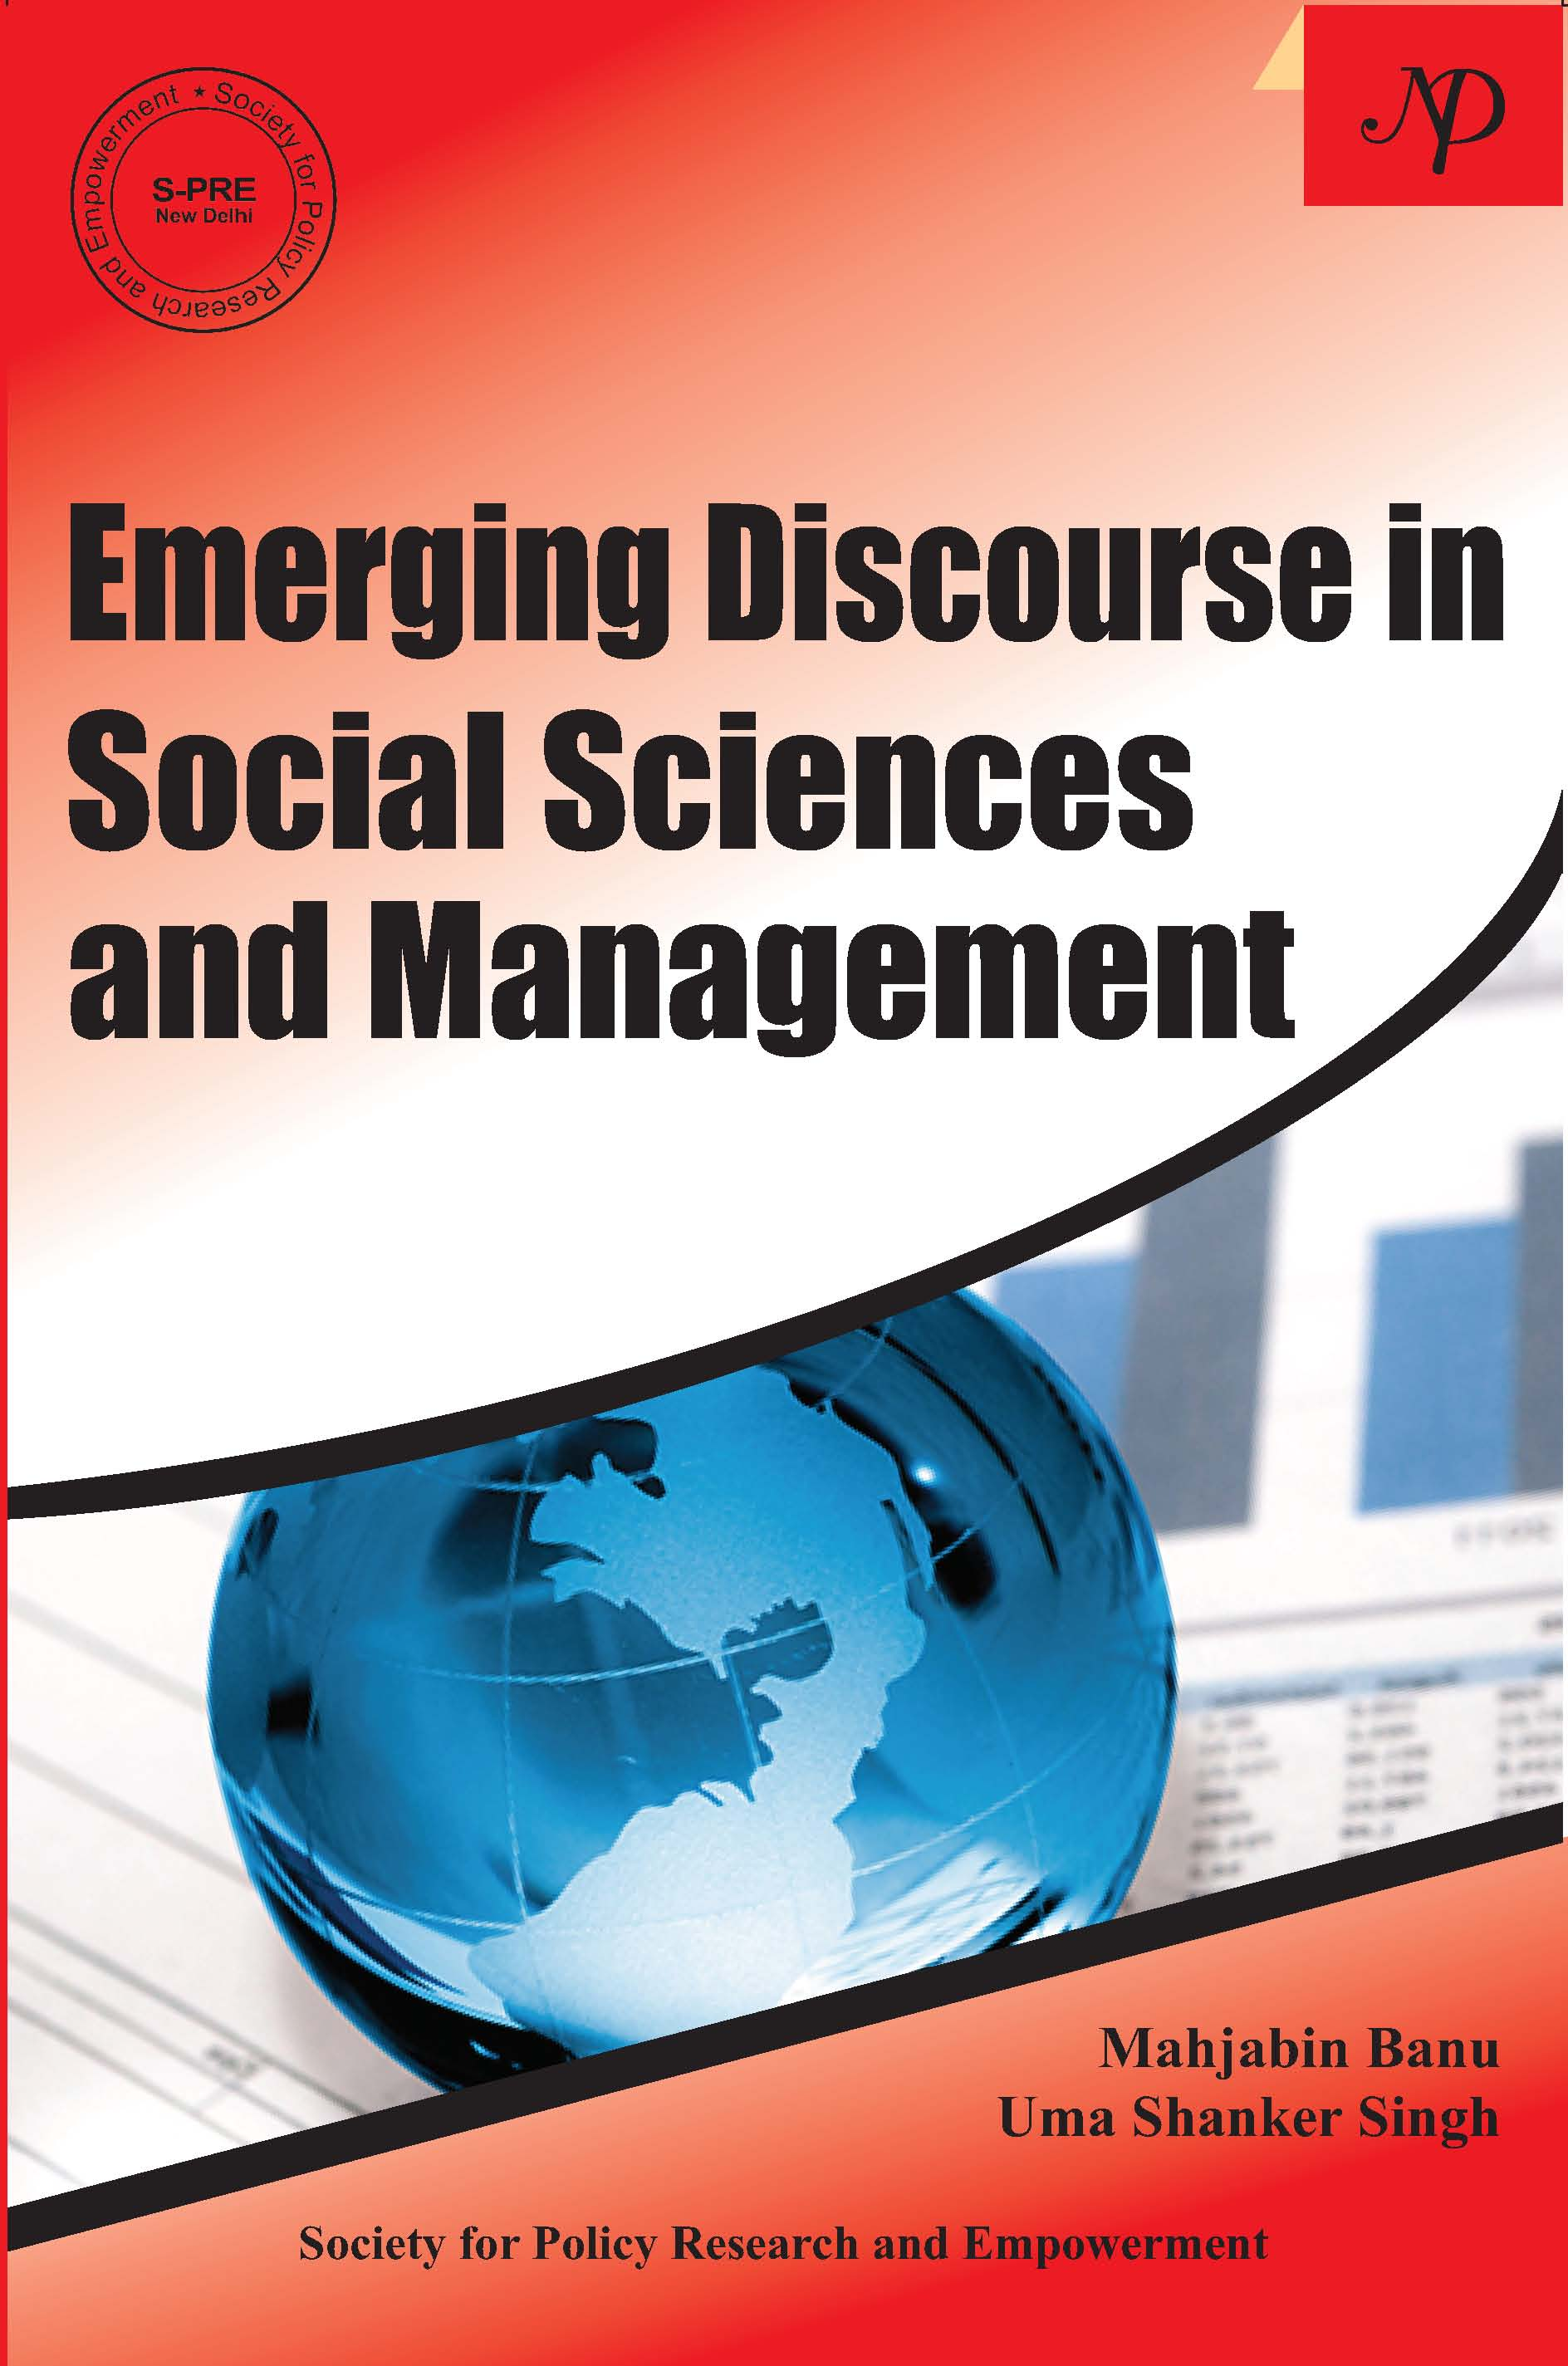 Cover Emerging Discourse in Social Sciences and Management.jpg